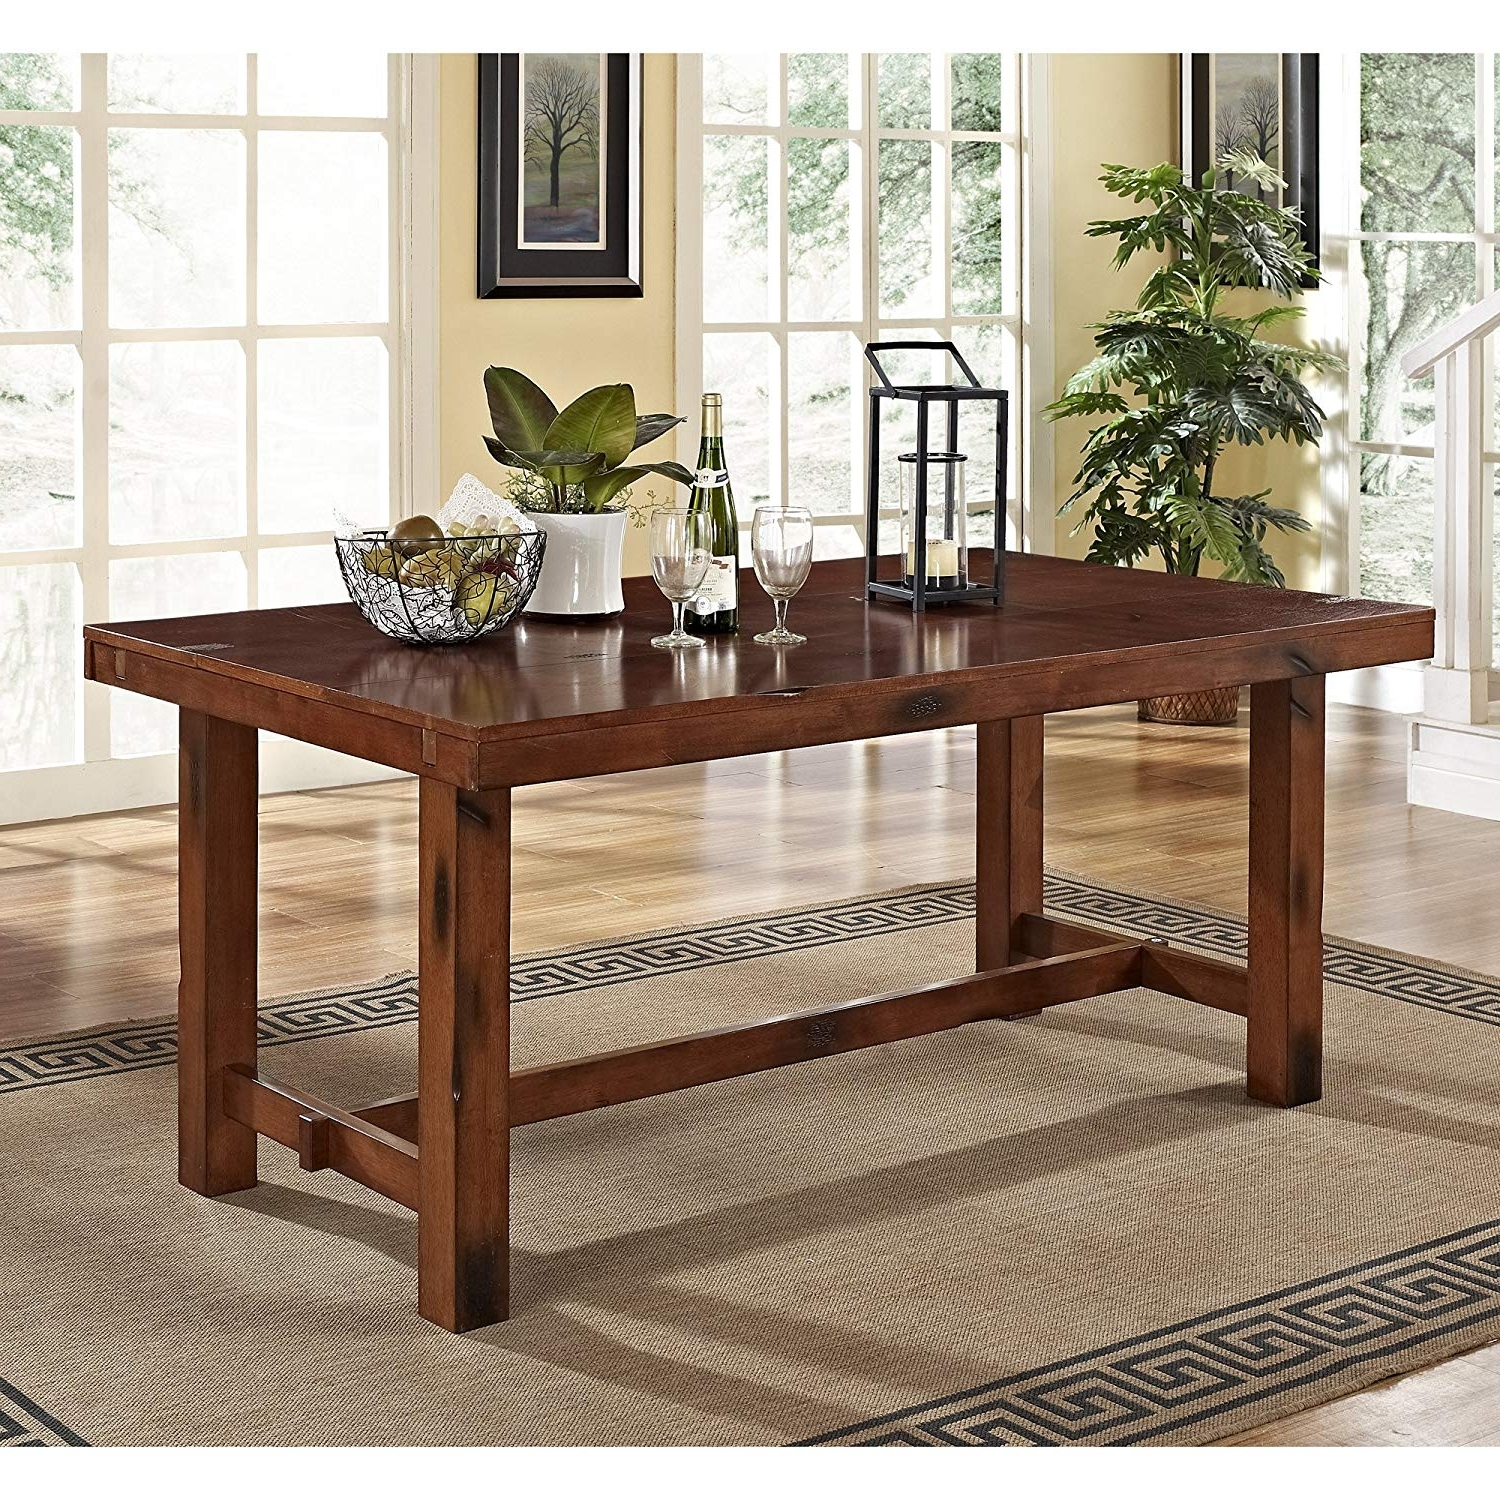 "Walker Edison 96"" Solid Wood Dark Oak Dining Table In Widely Used Wood Dining Tables (View 24 of 25)"